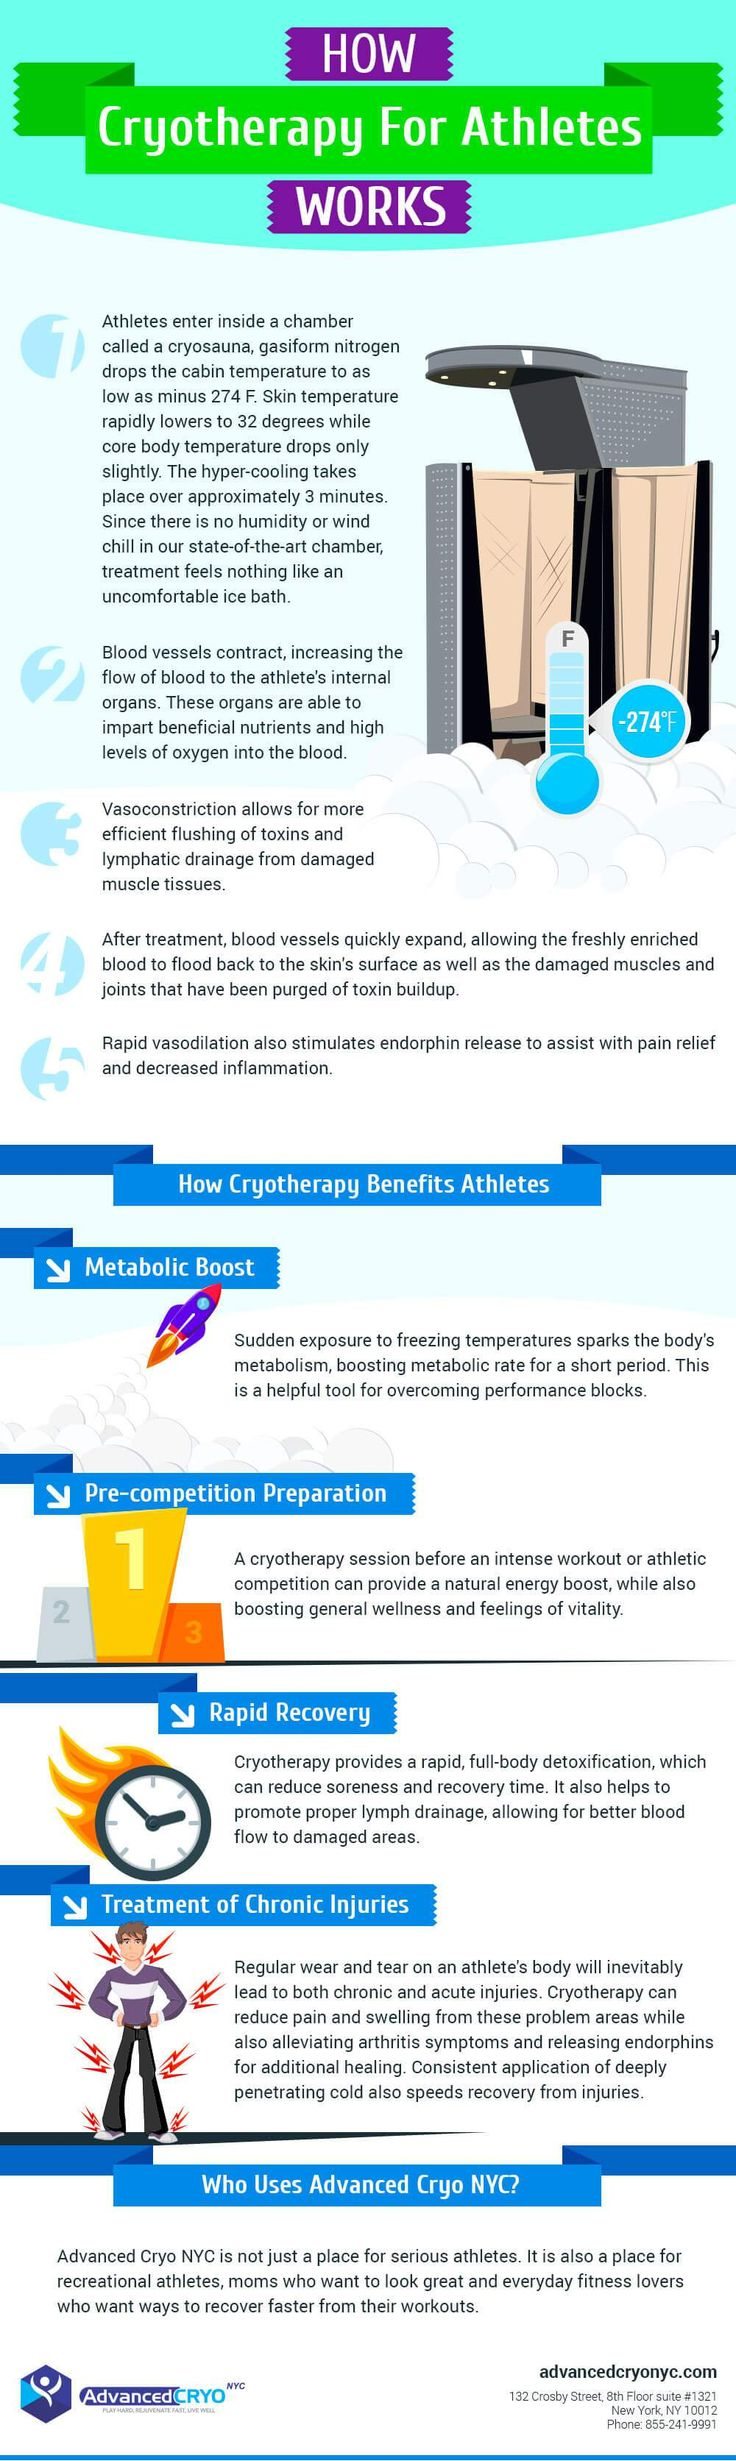 How Cryotherapy For Athletes Works